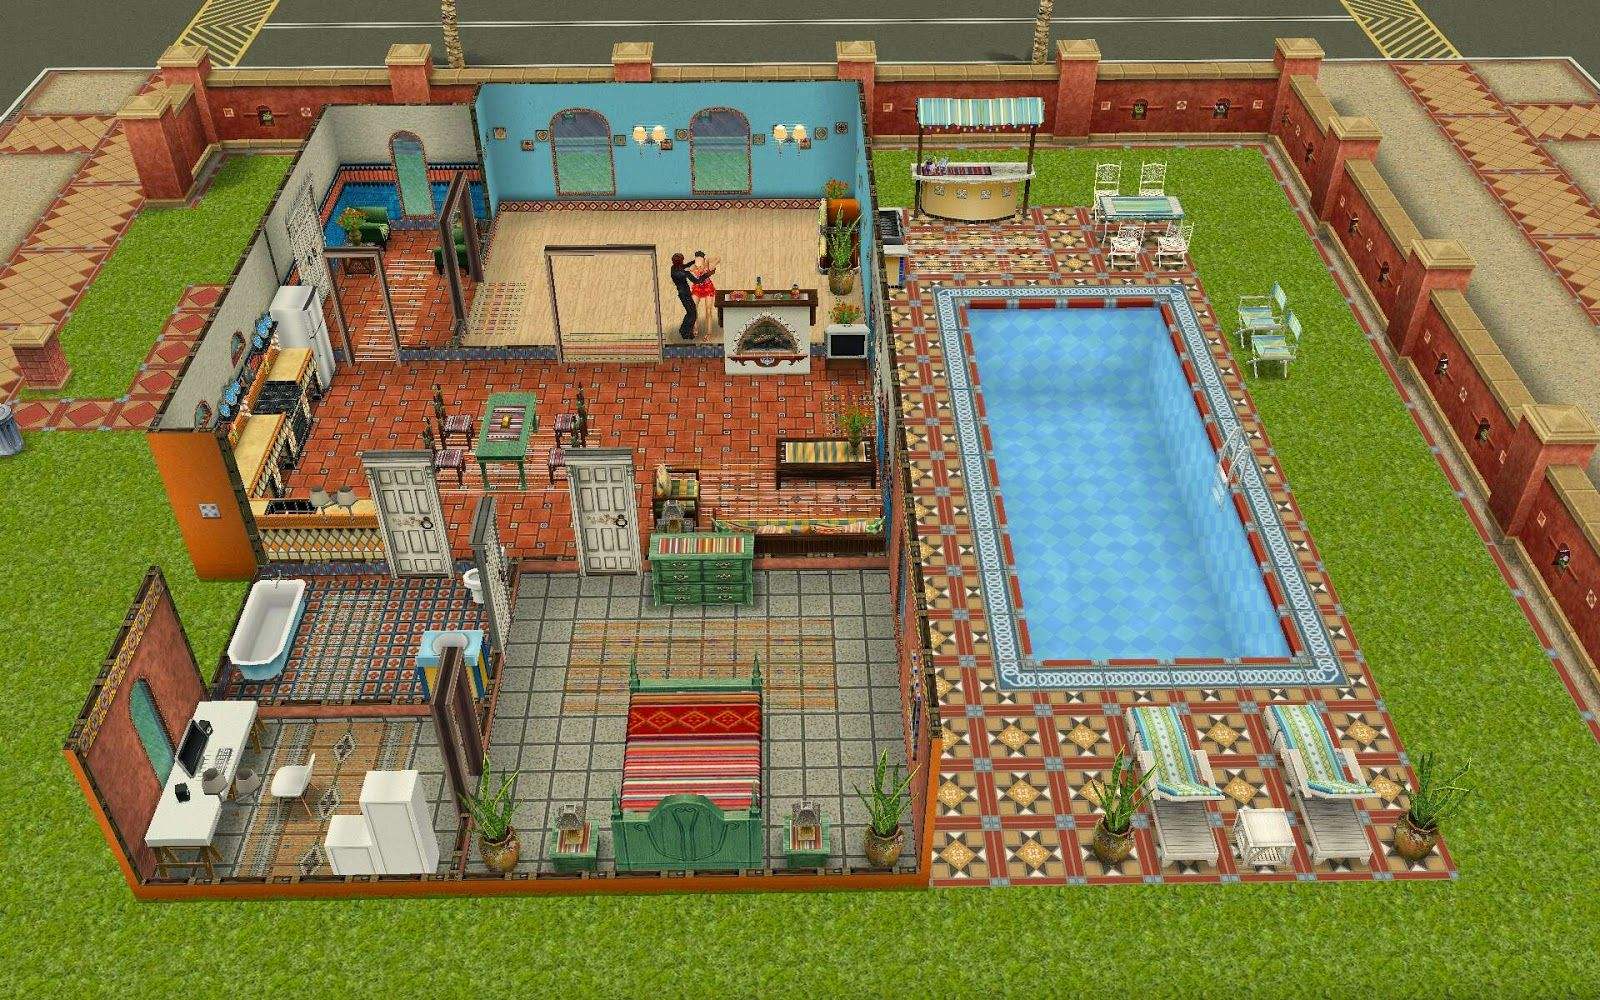 House design the sims freeplay - The Sims Freeplay Quest A Dance To Remember Quest Comes With Some Nice Prizes First It Unlocks The Dancing Hobbies And Second It Unlocks